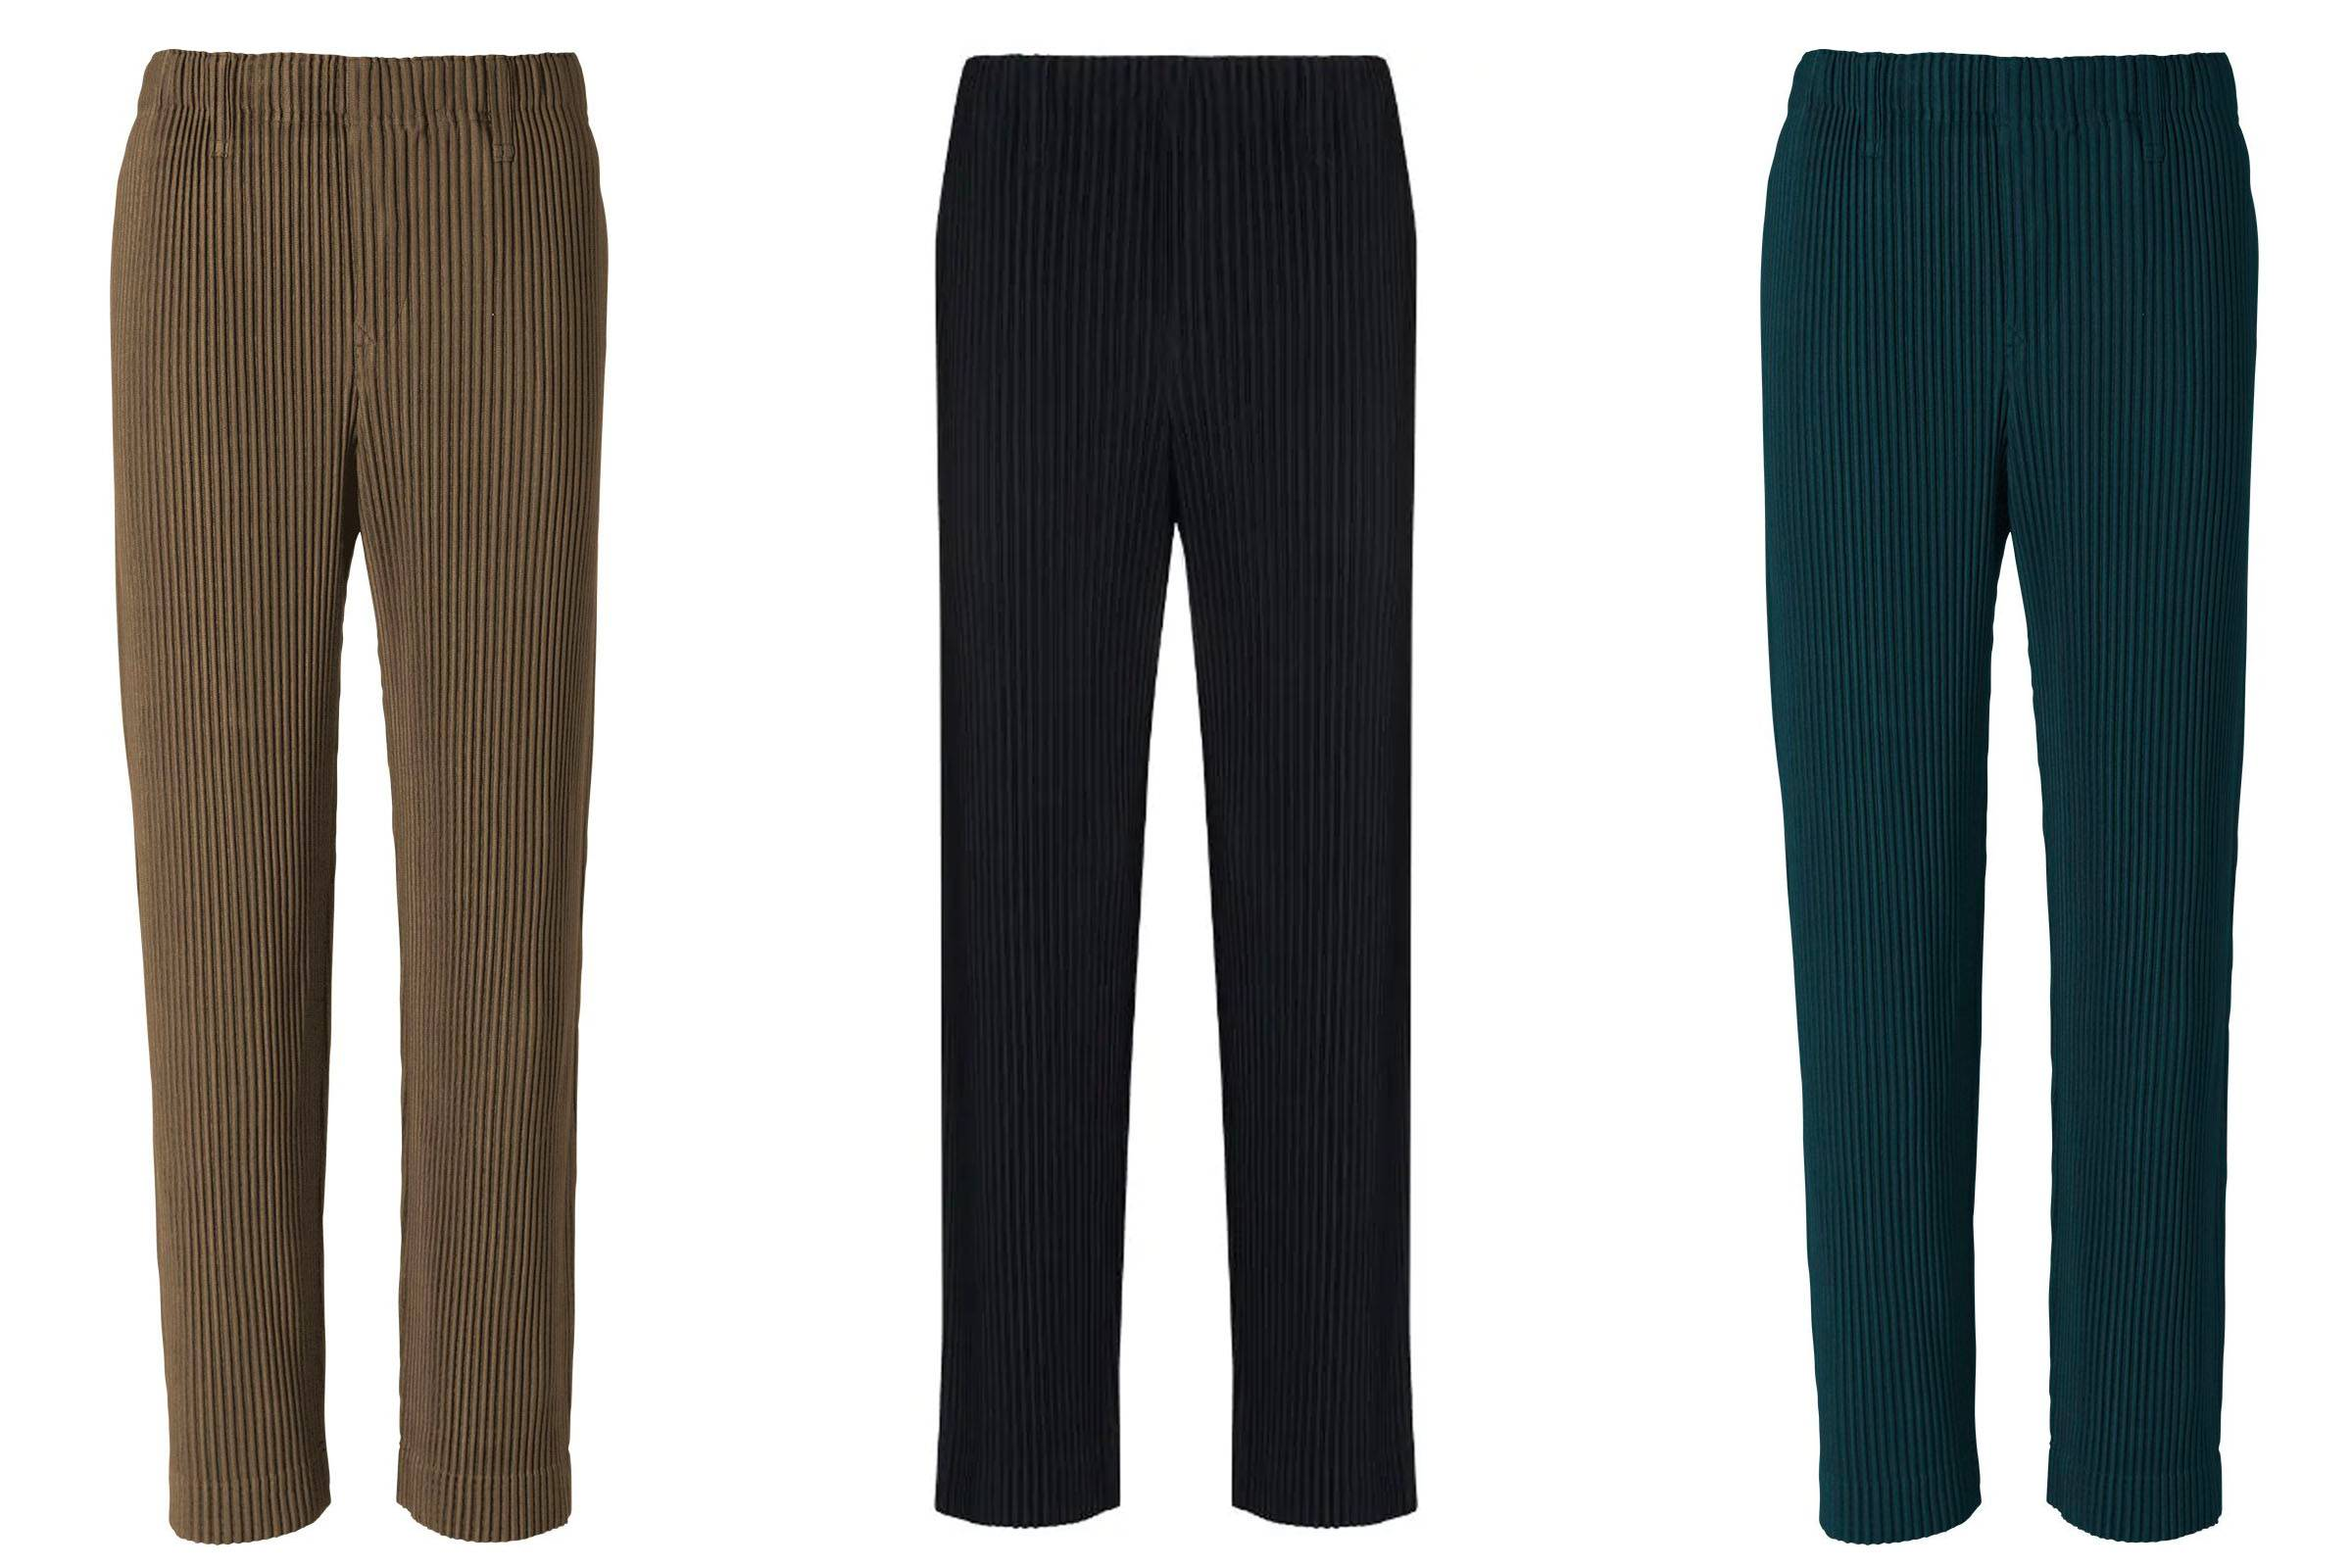 Bang for Your Buck: Homme Plissé Issey Miyake Trousers